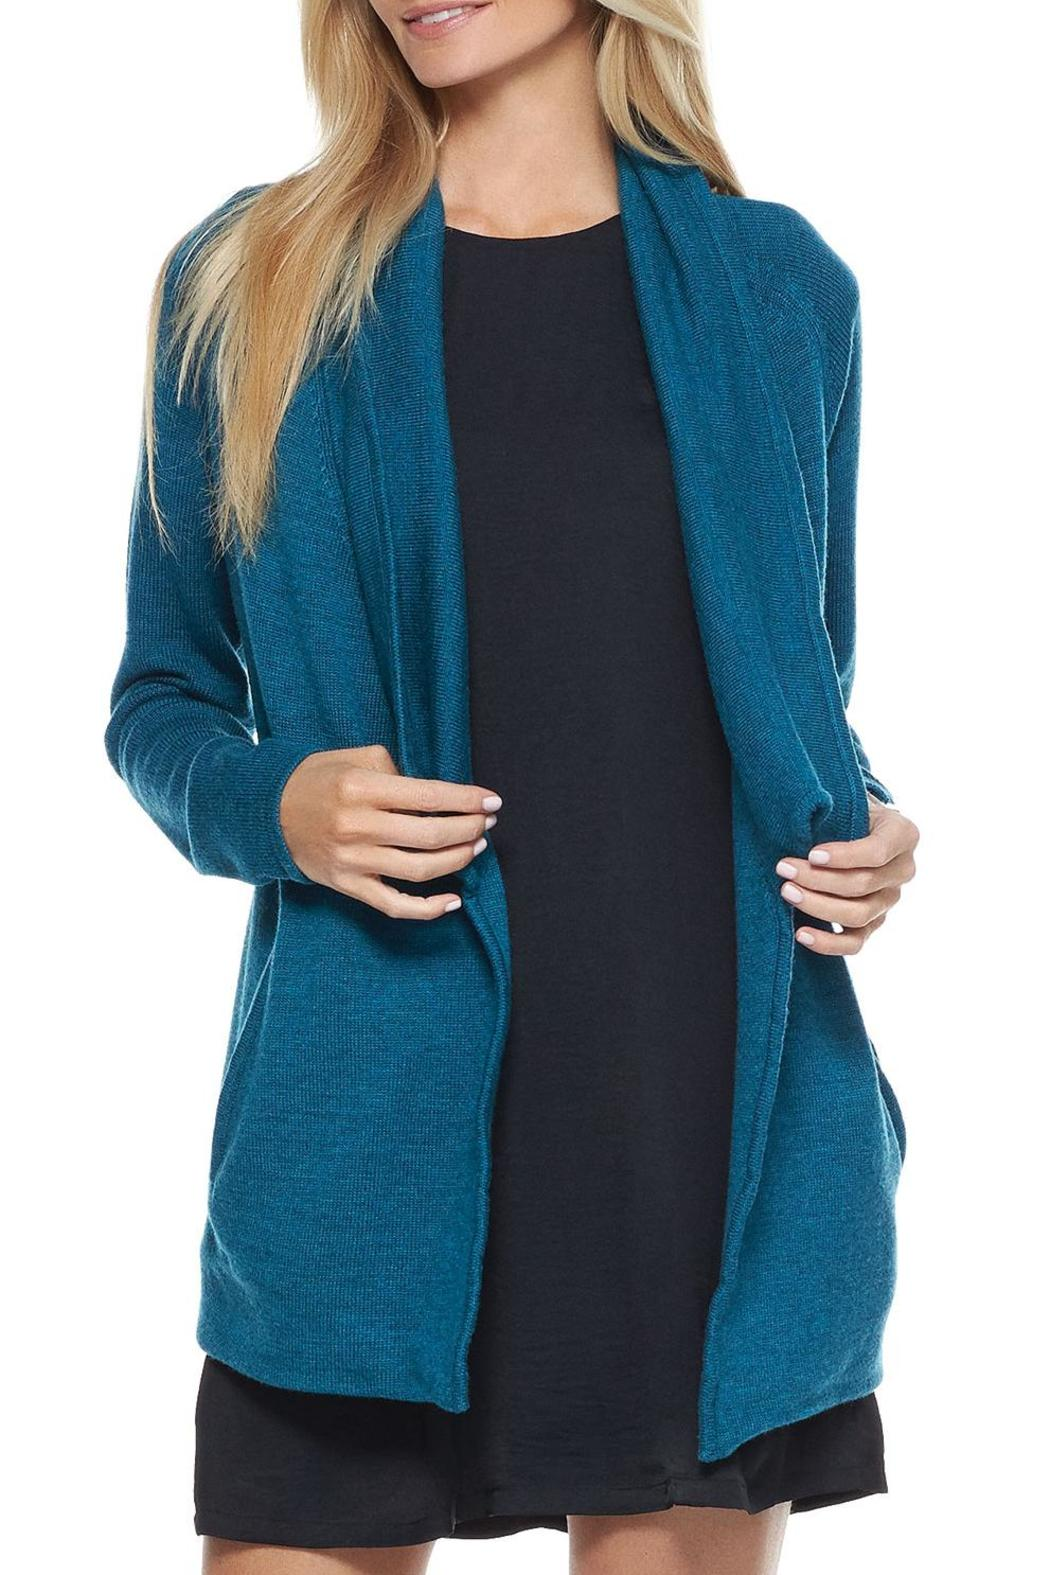 Tart Clothing Teal Sweater Coat from Montana by Fifty Seven ...